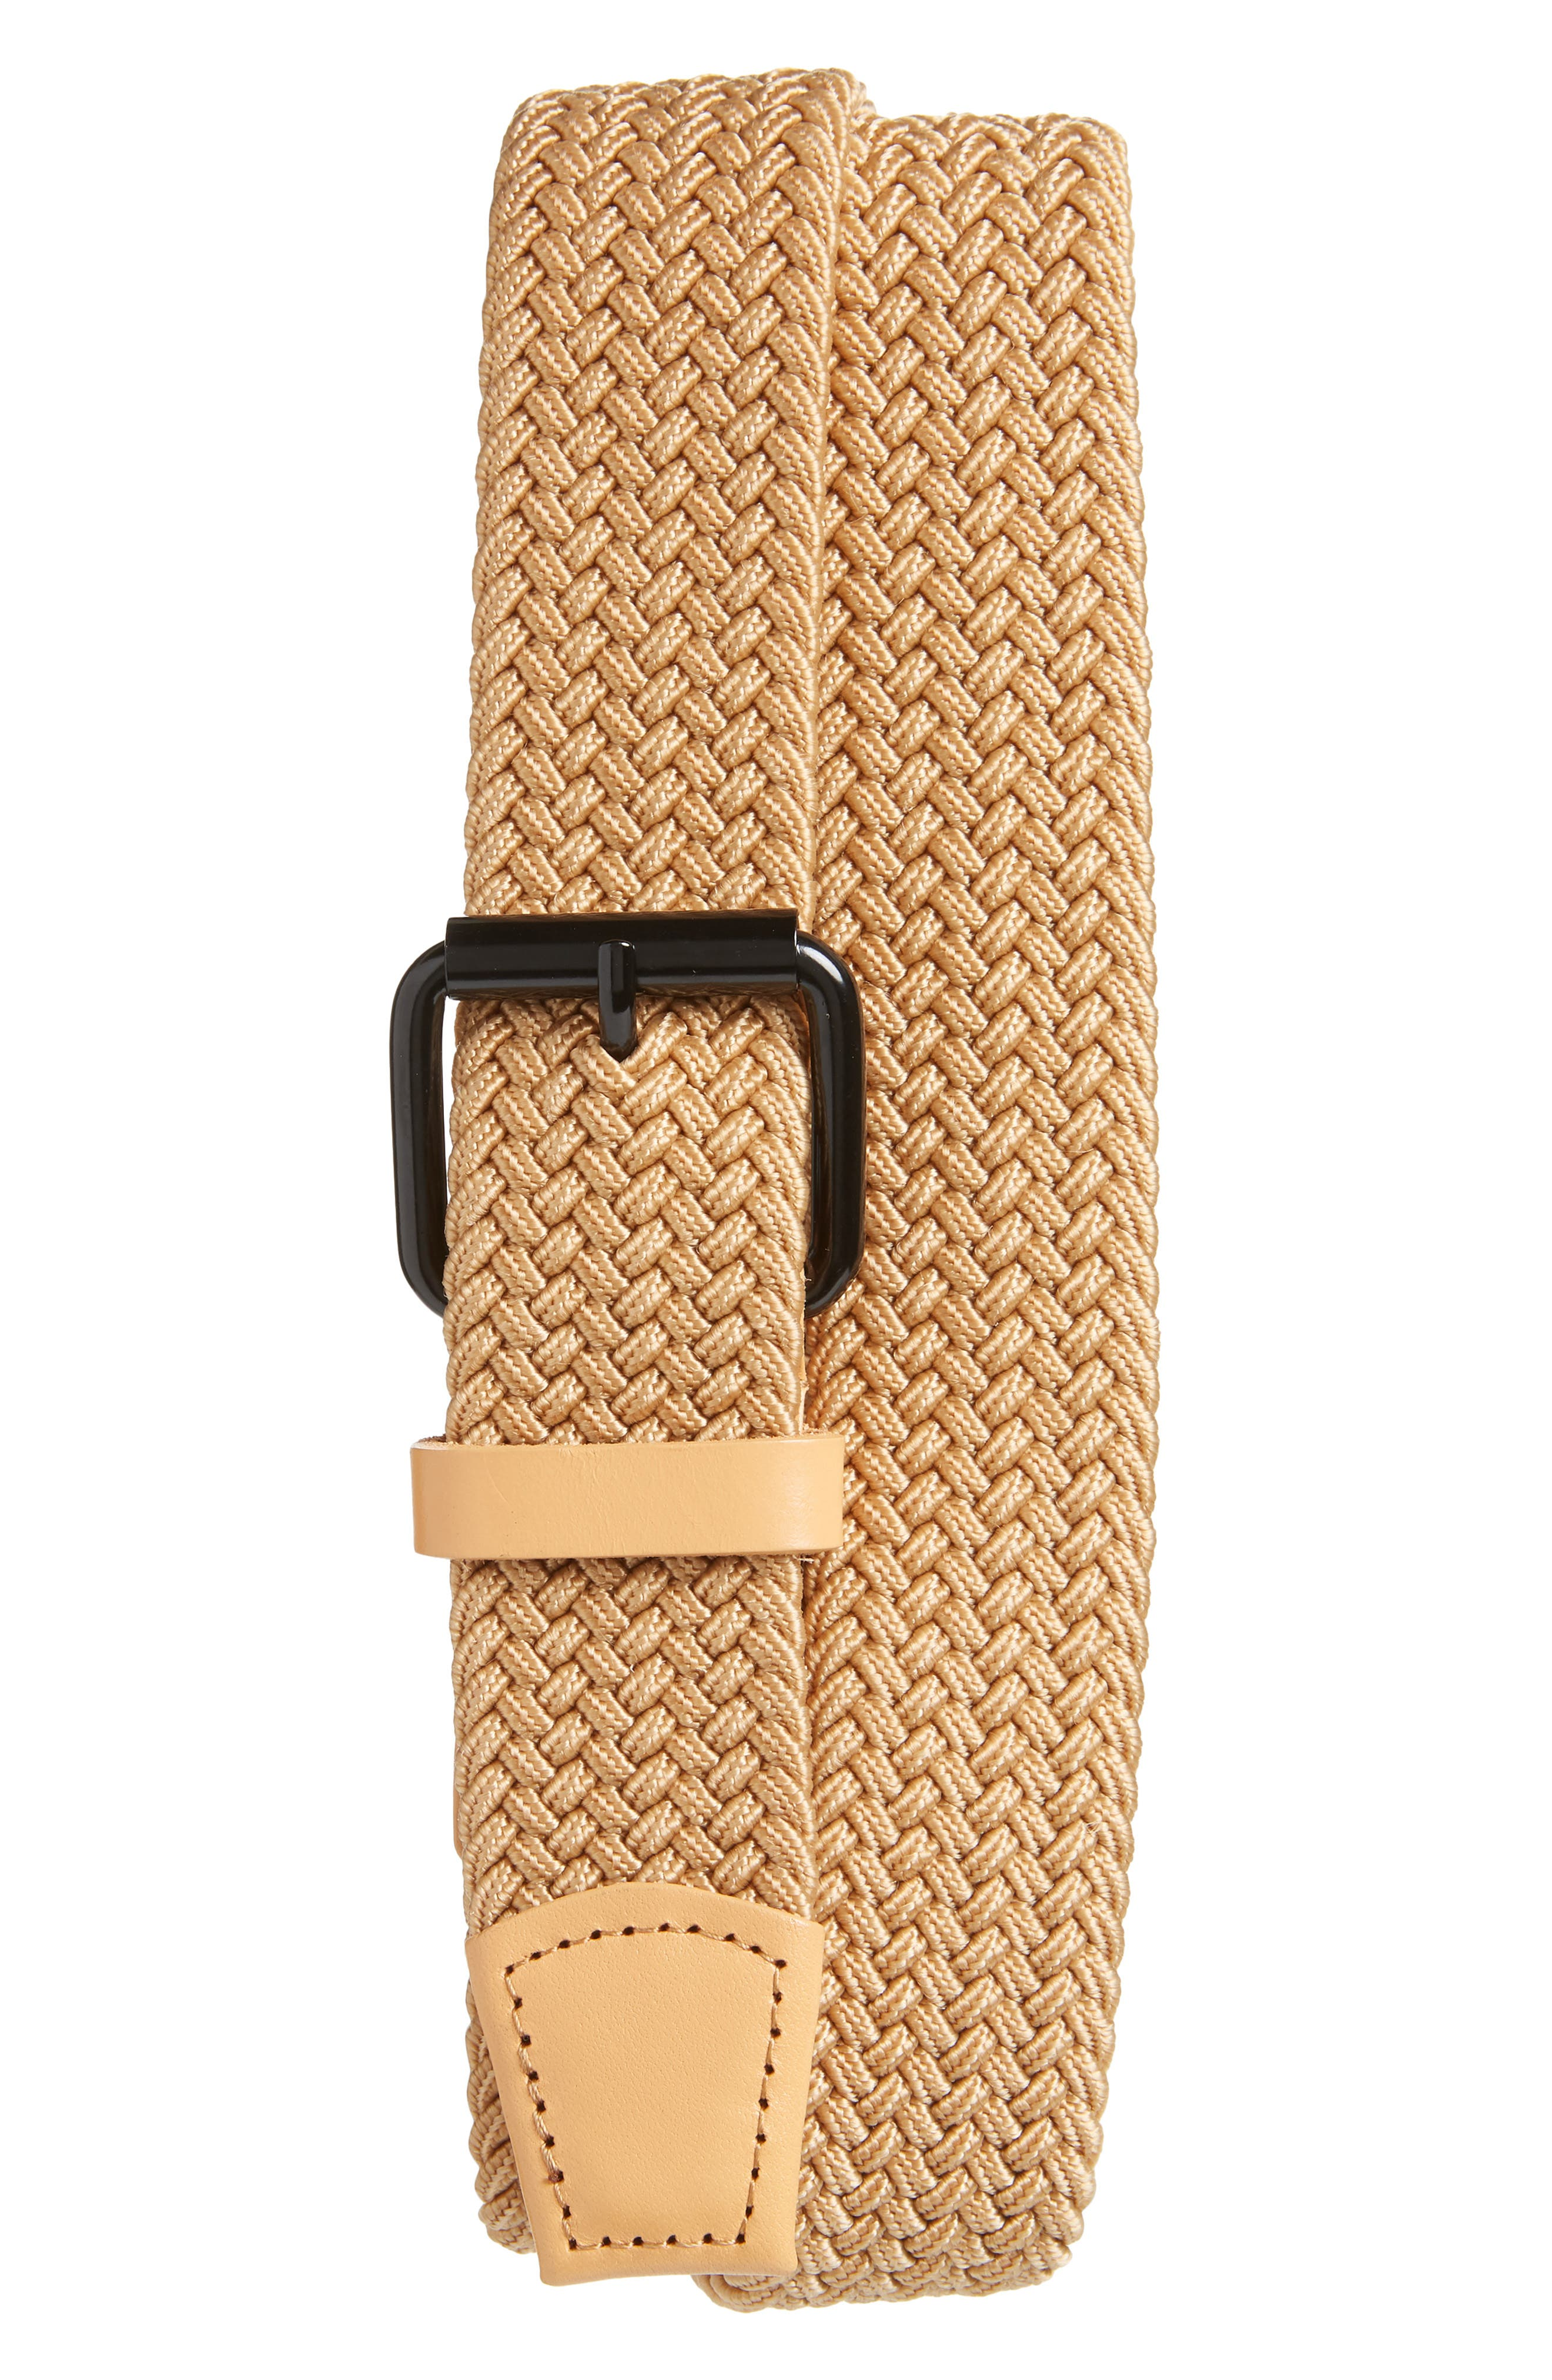 Saturdays Nyc Shane Woven Belt, Size One Size - Vegetable Tan